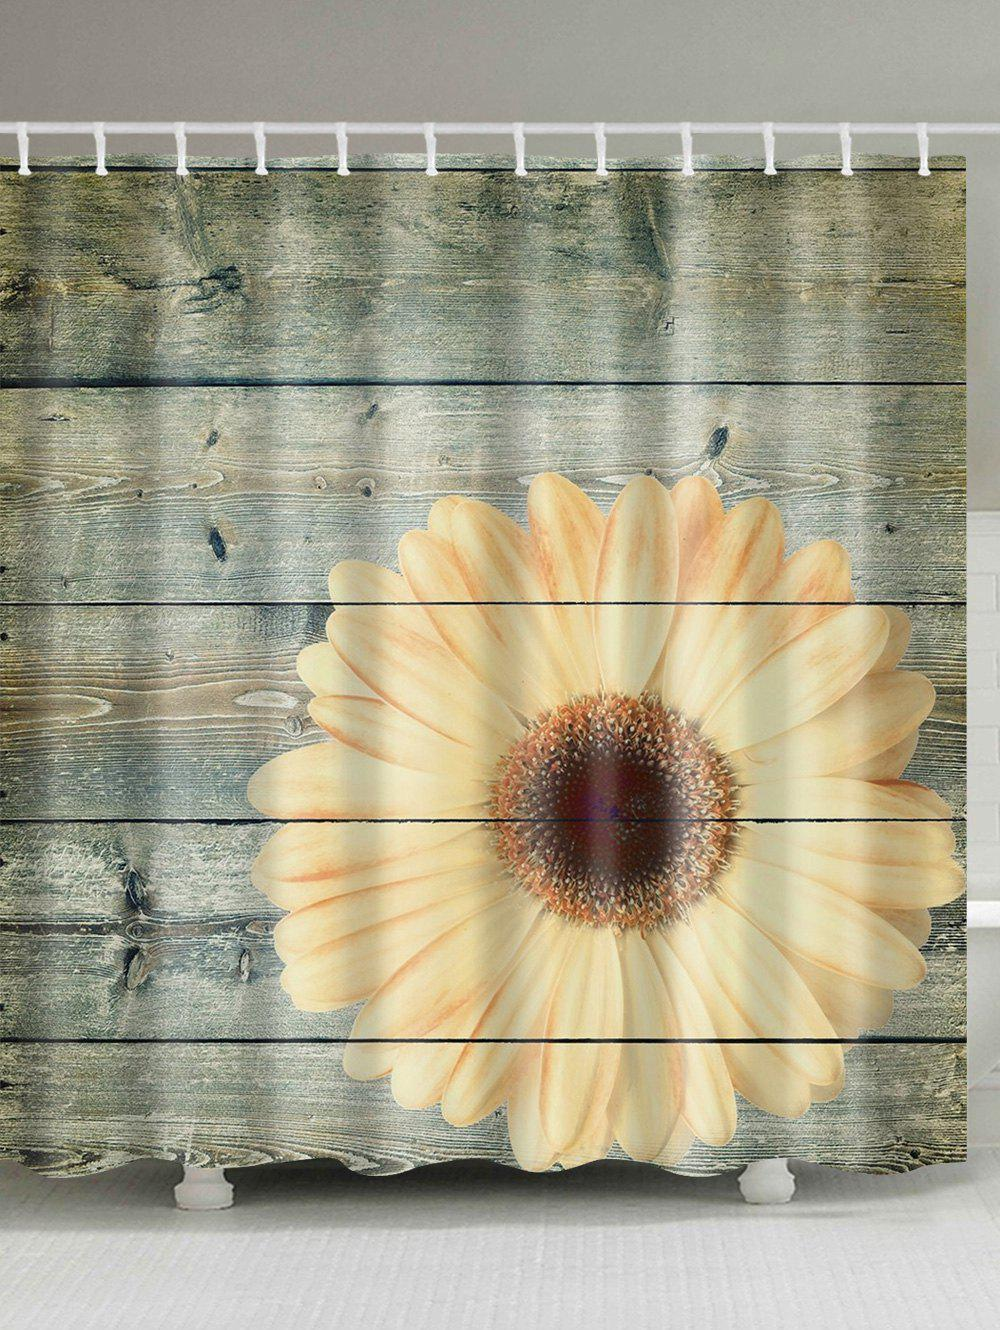 Beau Bathroom Decor Plank Sunflower Shower Curtain   WOOD W71 INCH * L71 INCH